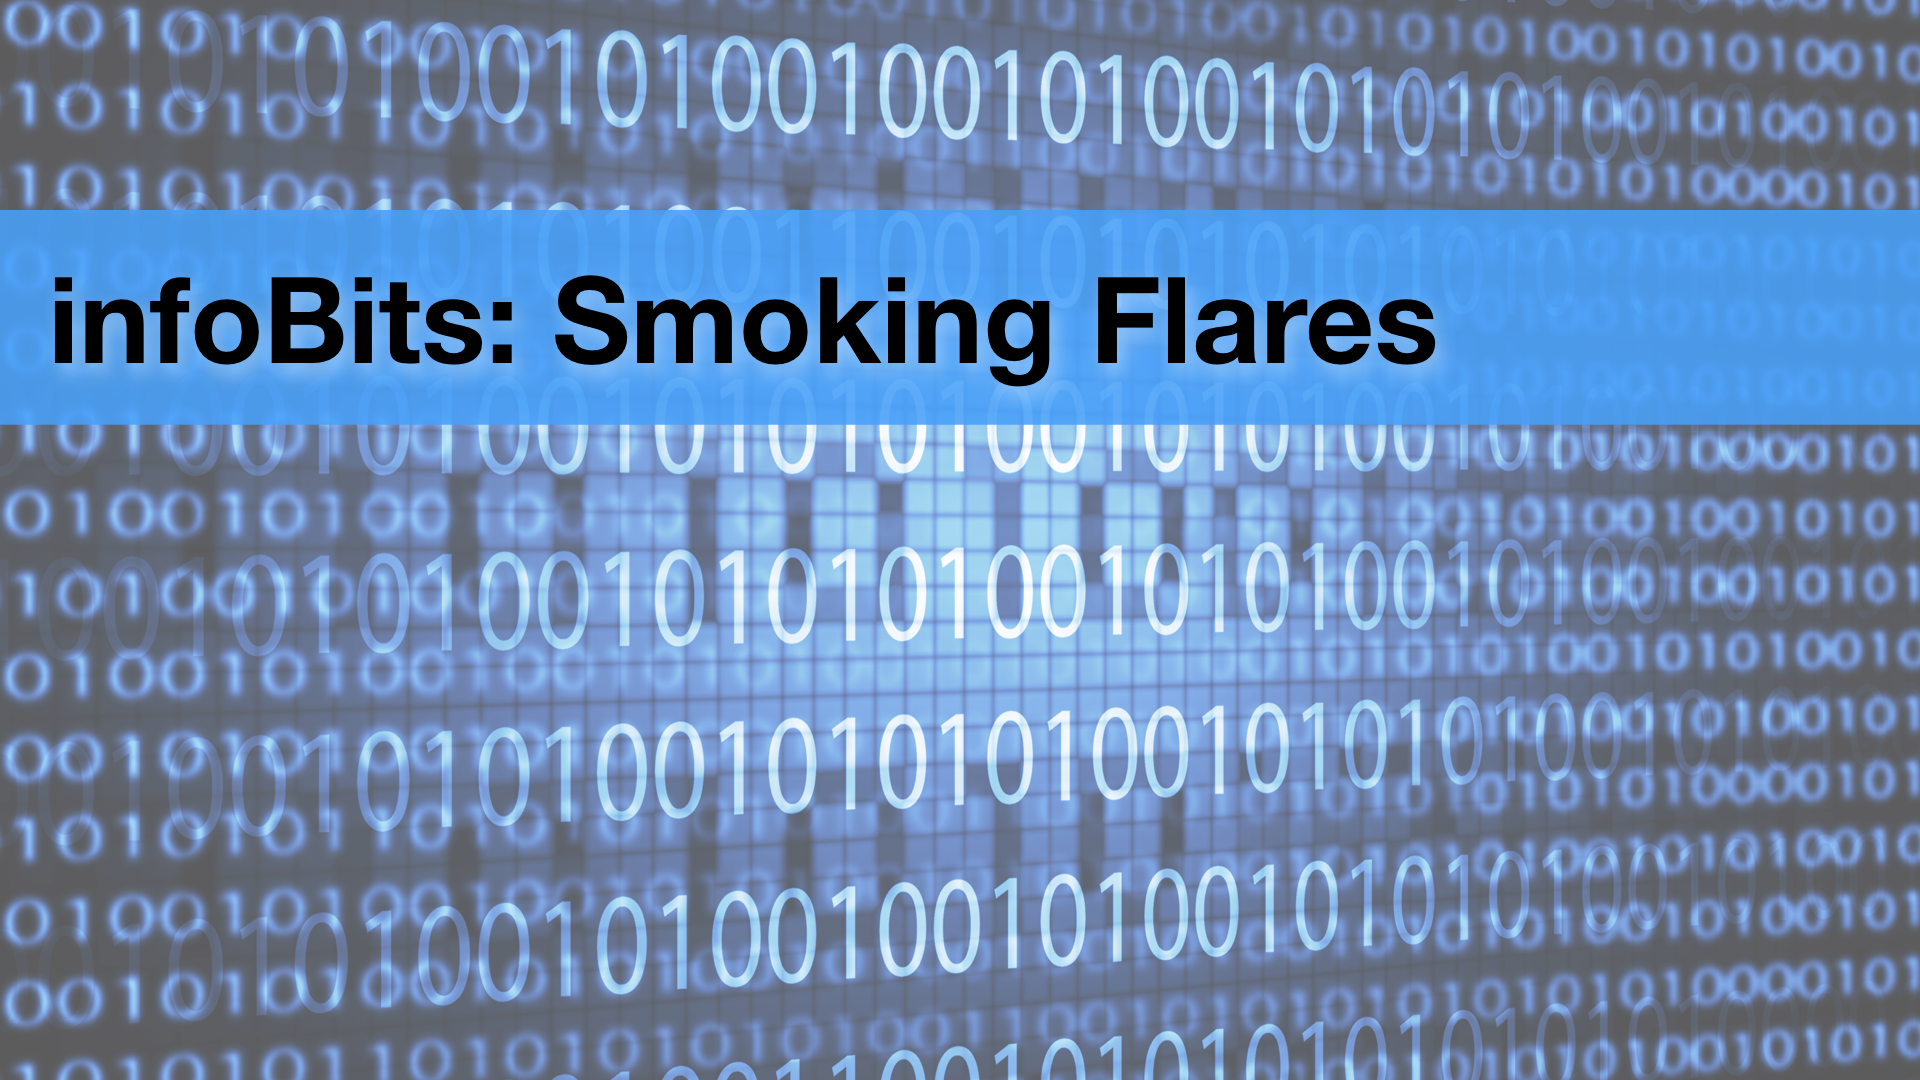 infoBits: Smoking Flares